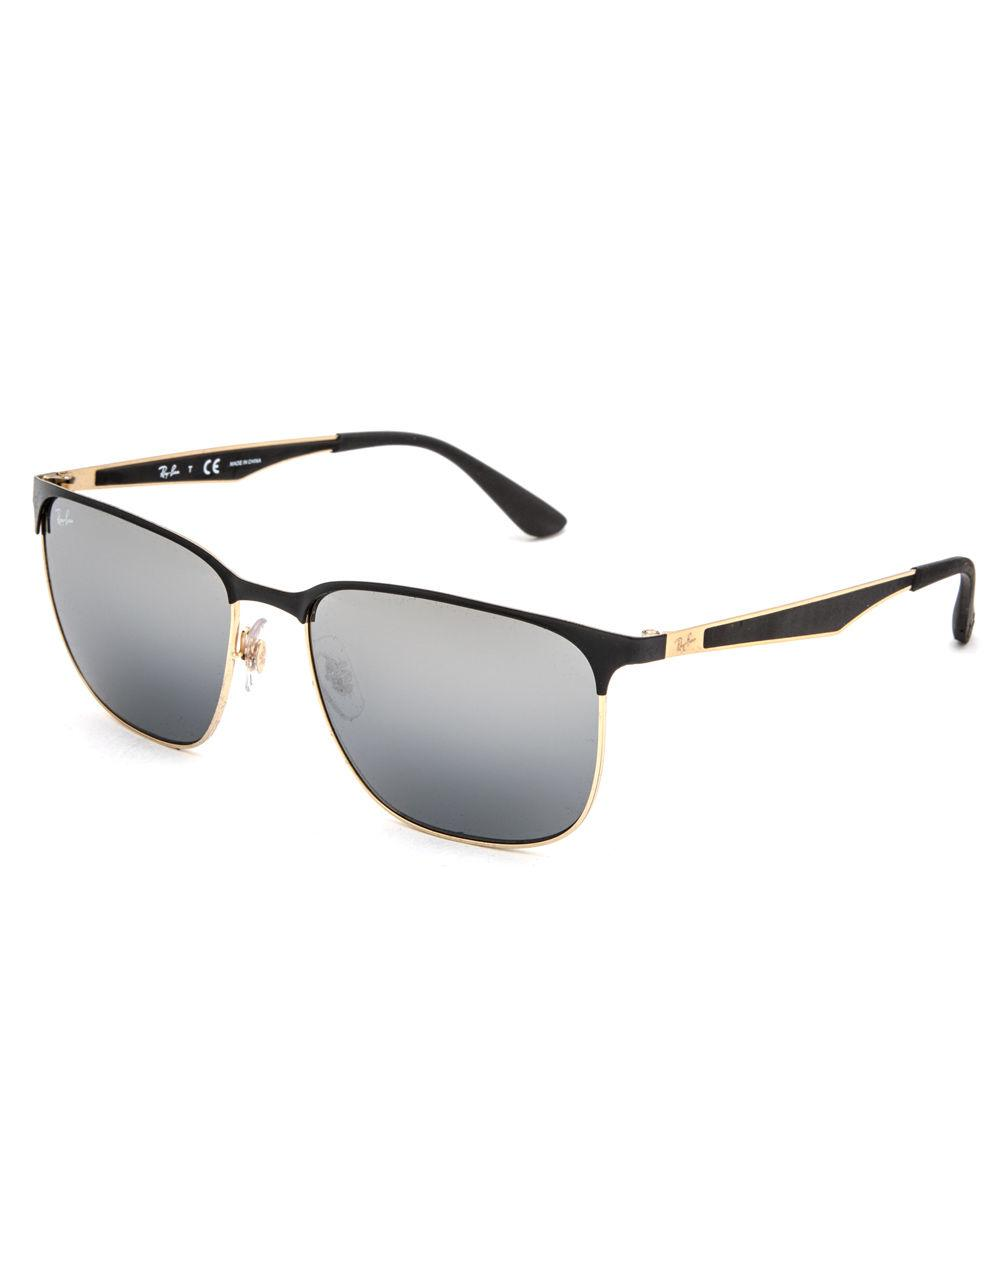 61858c162fa Lyst - Ray-Ban Clubmaster Sunglasses in Metallic for Men